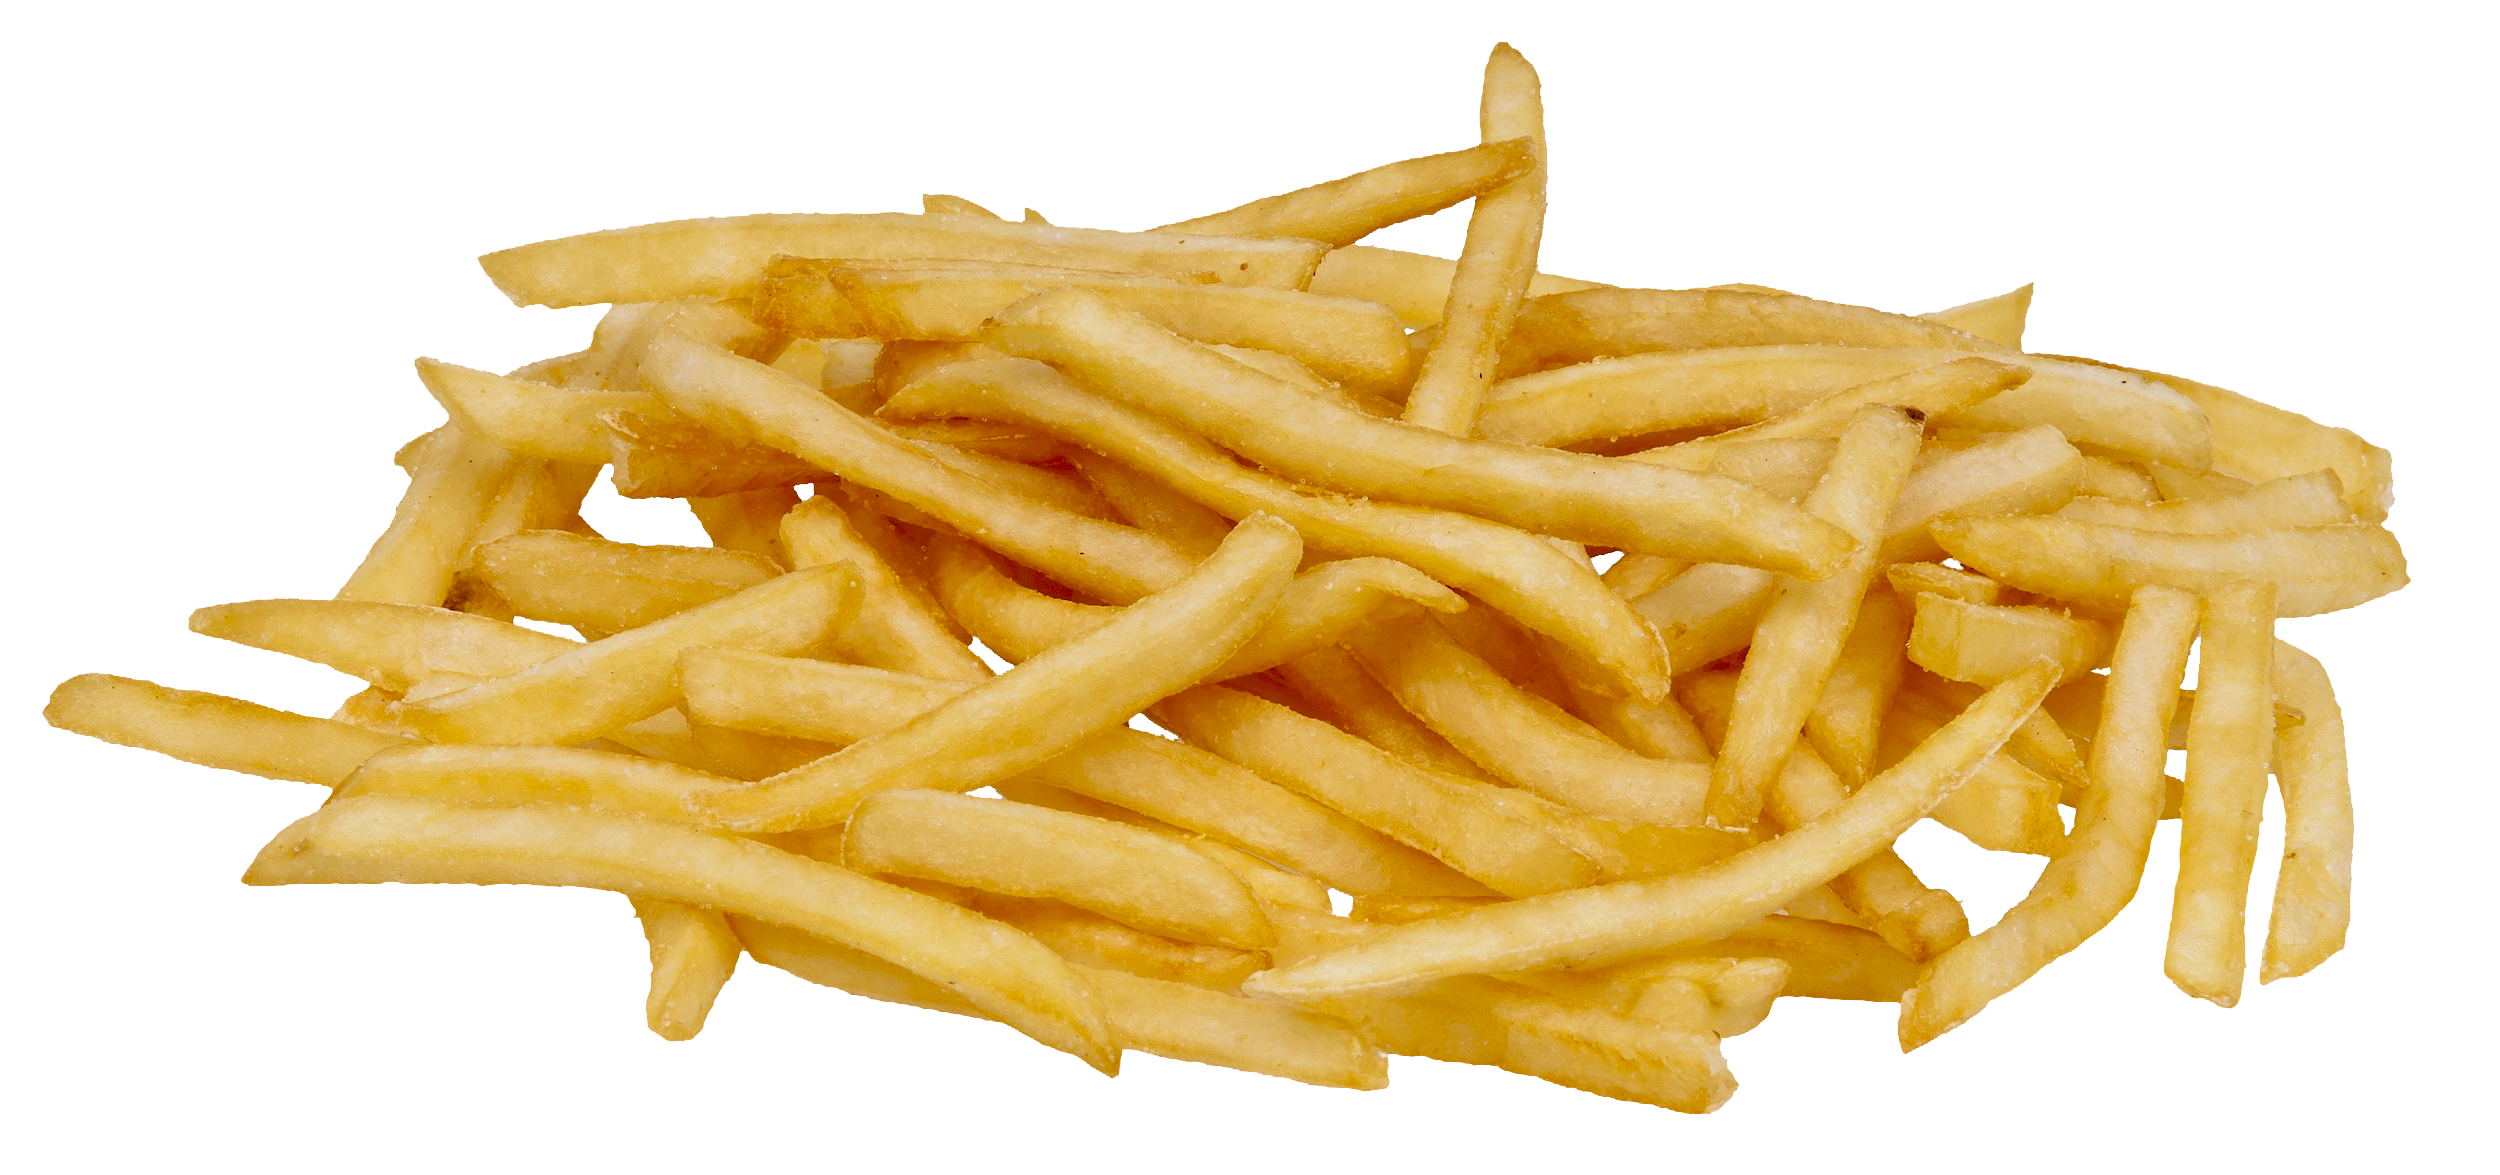 Pin By M Atiqu On French Fries Foods To Avoid Fast Food Items French Fries